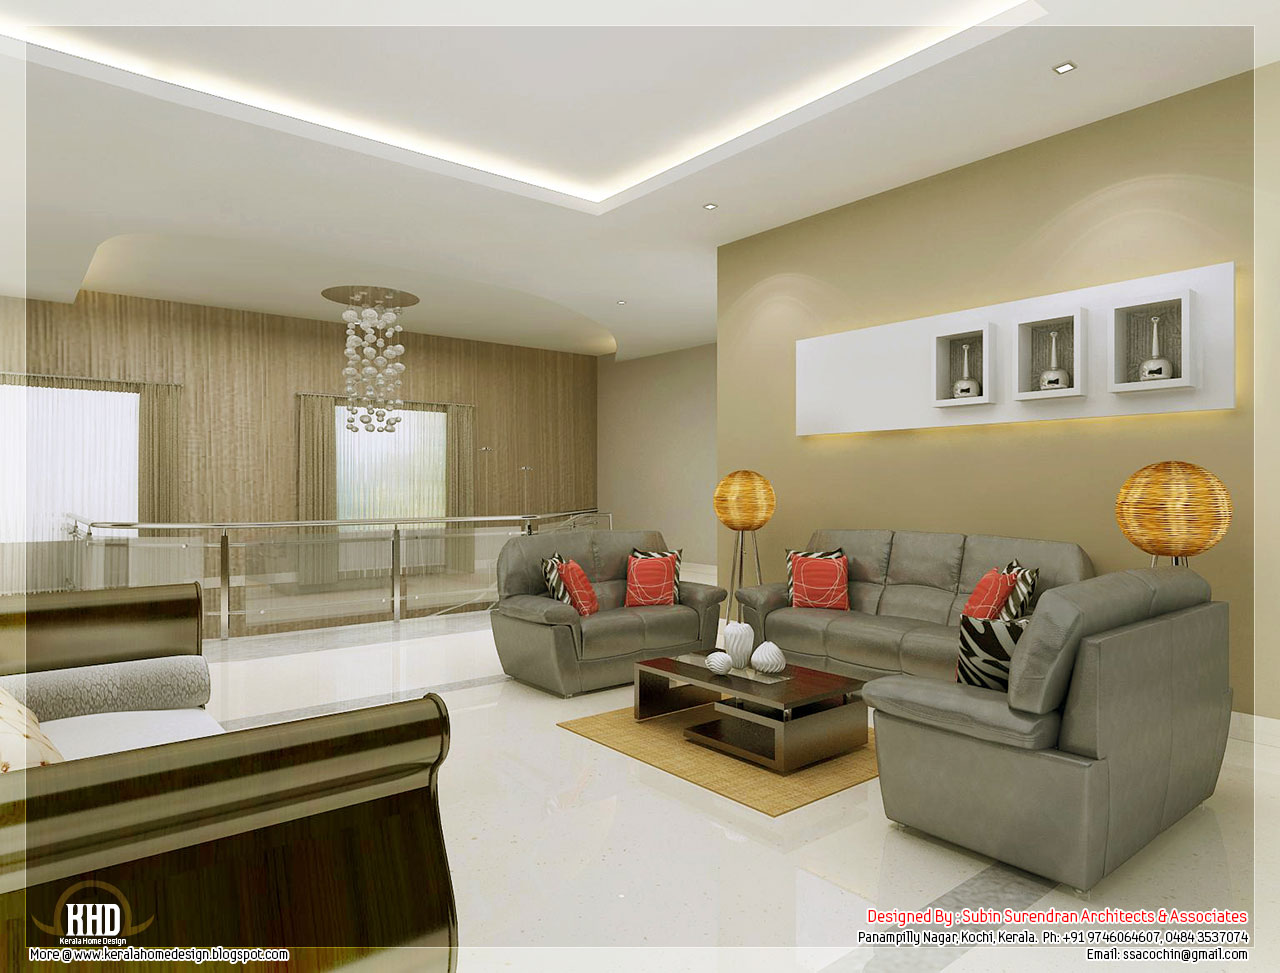 Awesome 3d interior renderings house design plans Living room interior designs images